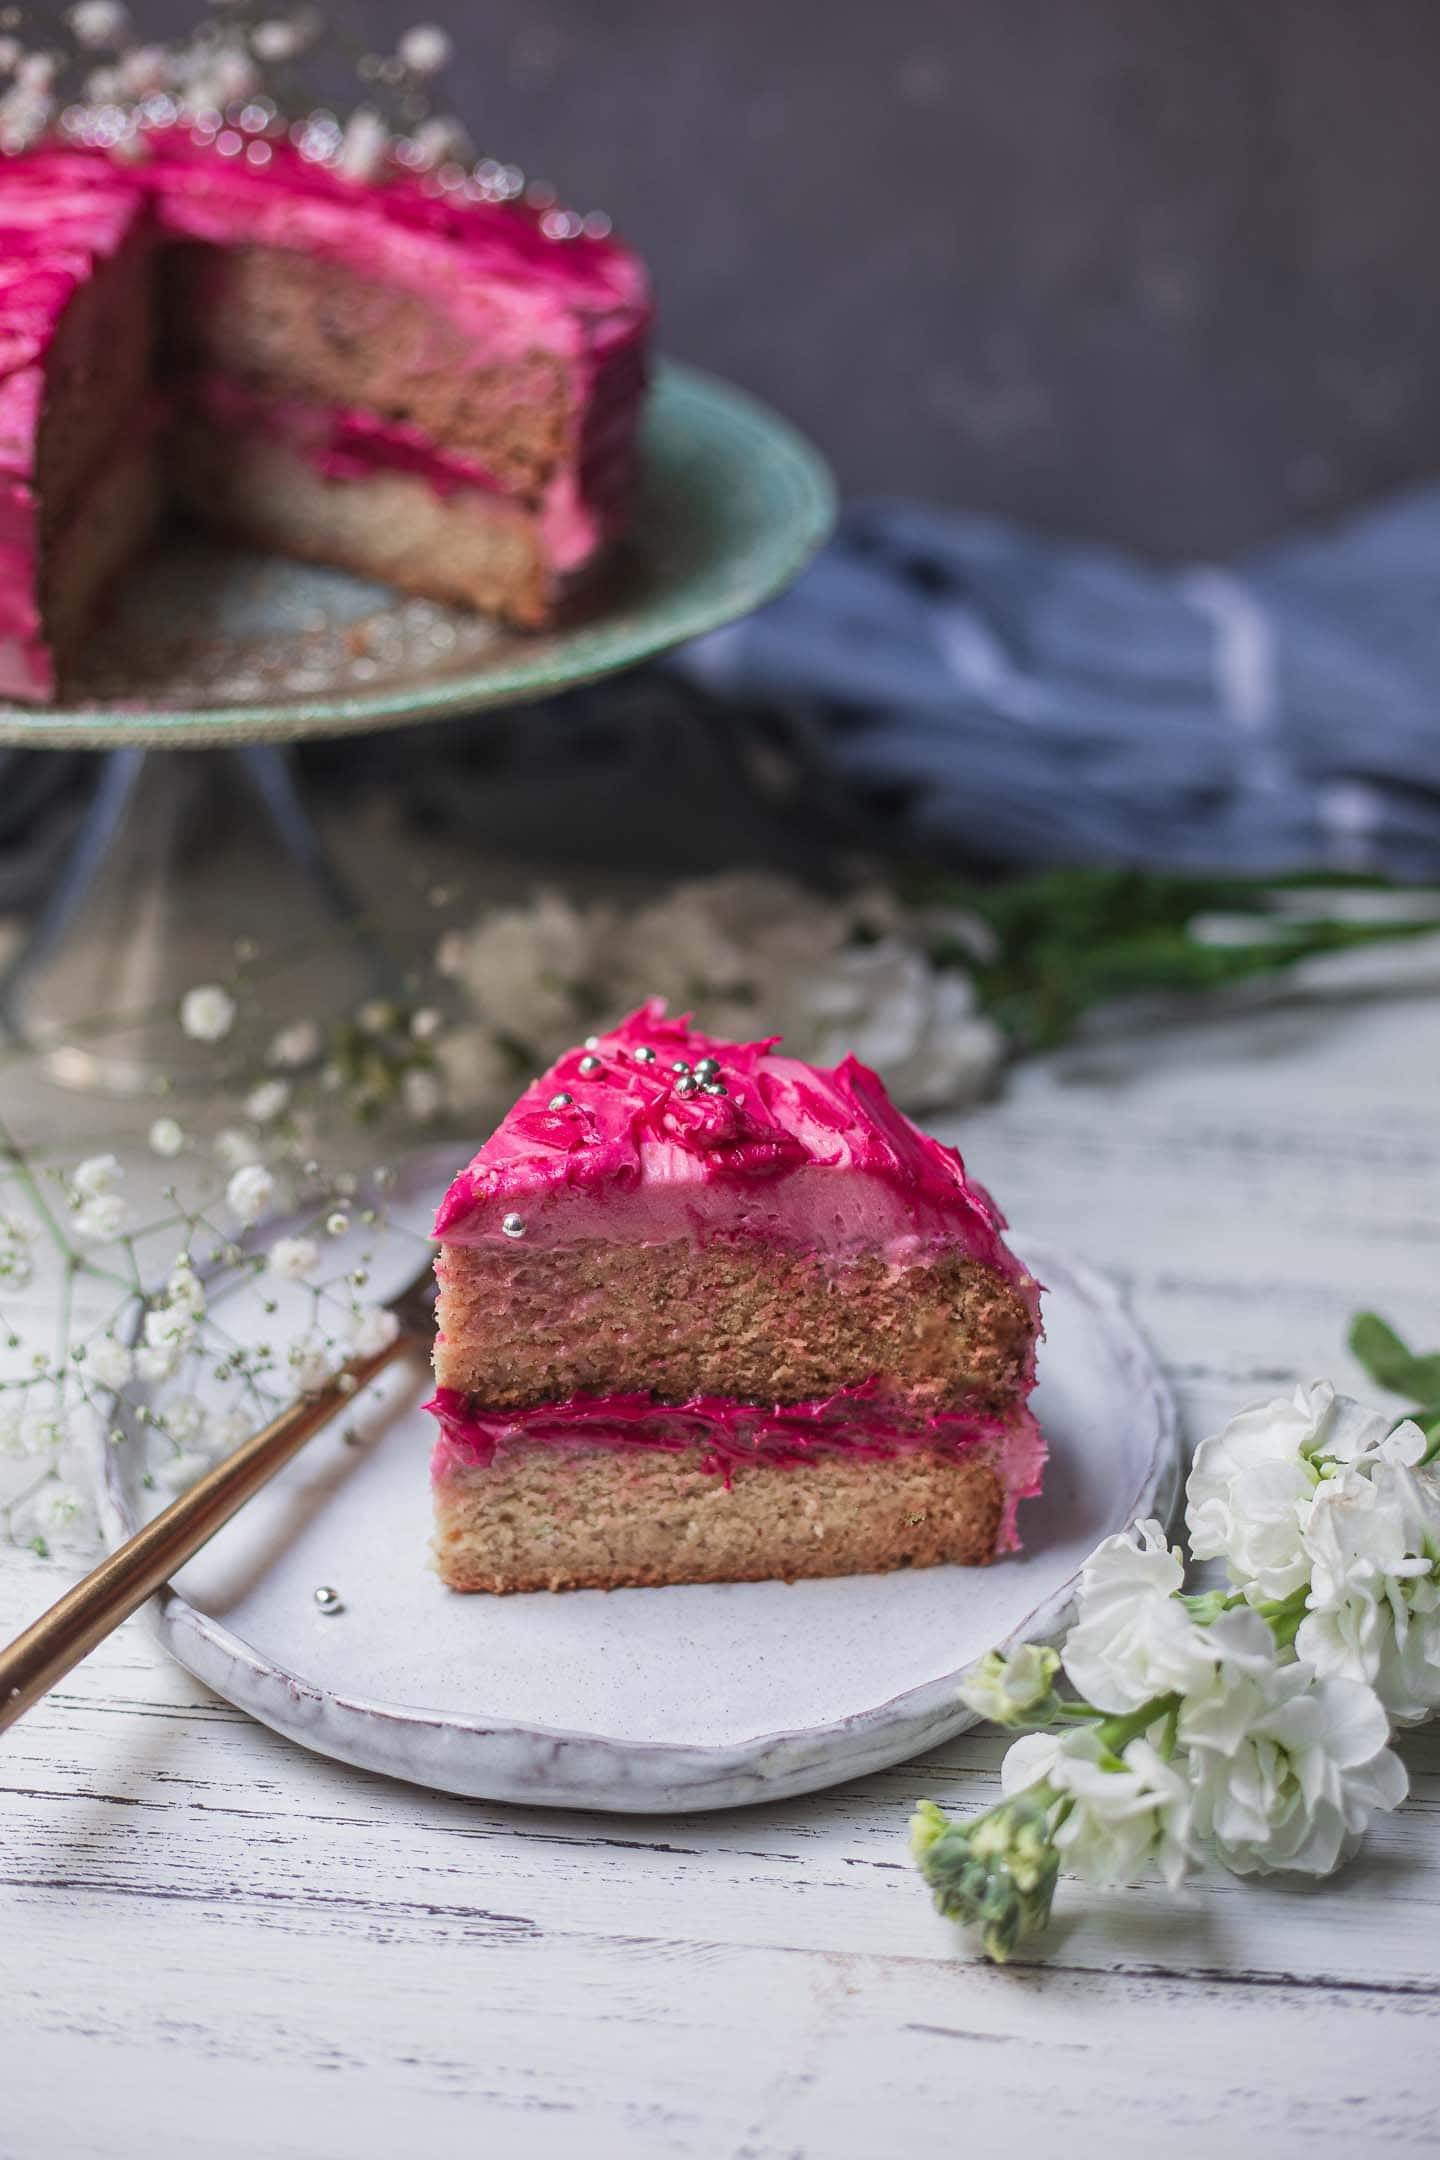 Slice of vegan vanilla cake with bright pink frosting